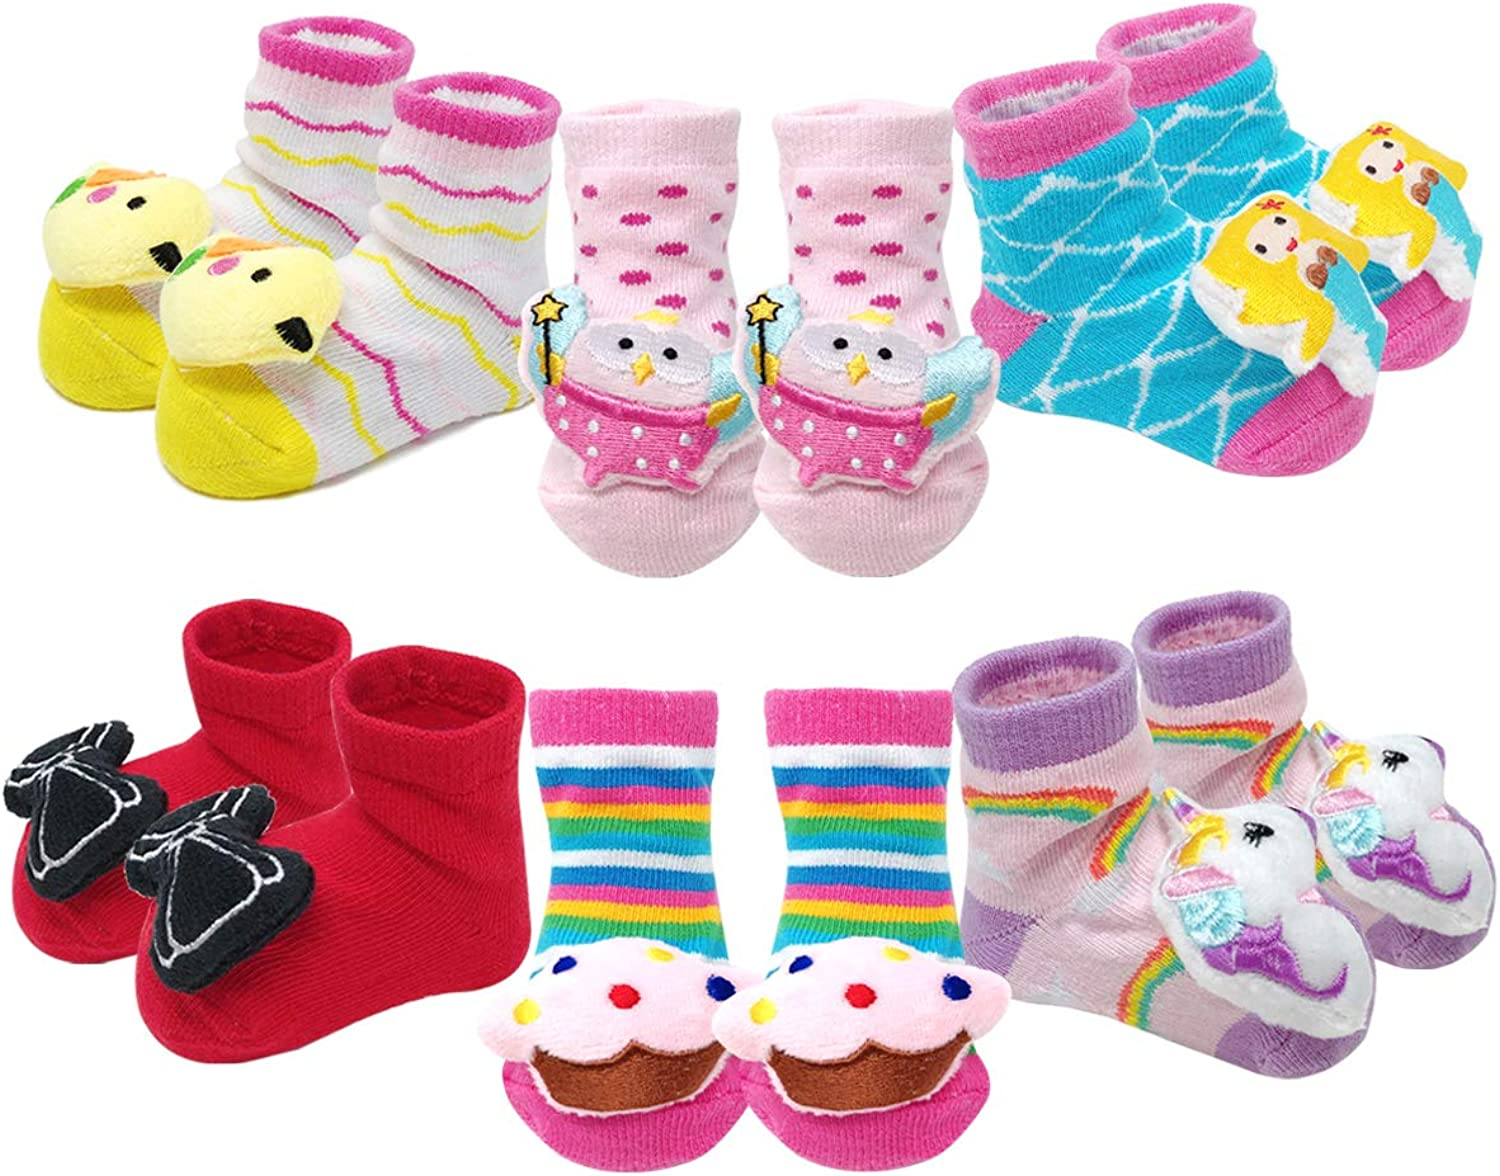 Bowbear Adorable Baby 6 Pair Non-Skid Bootie Socks